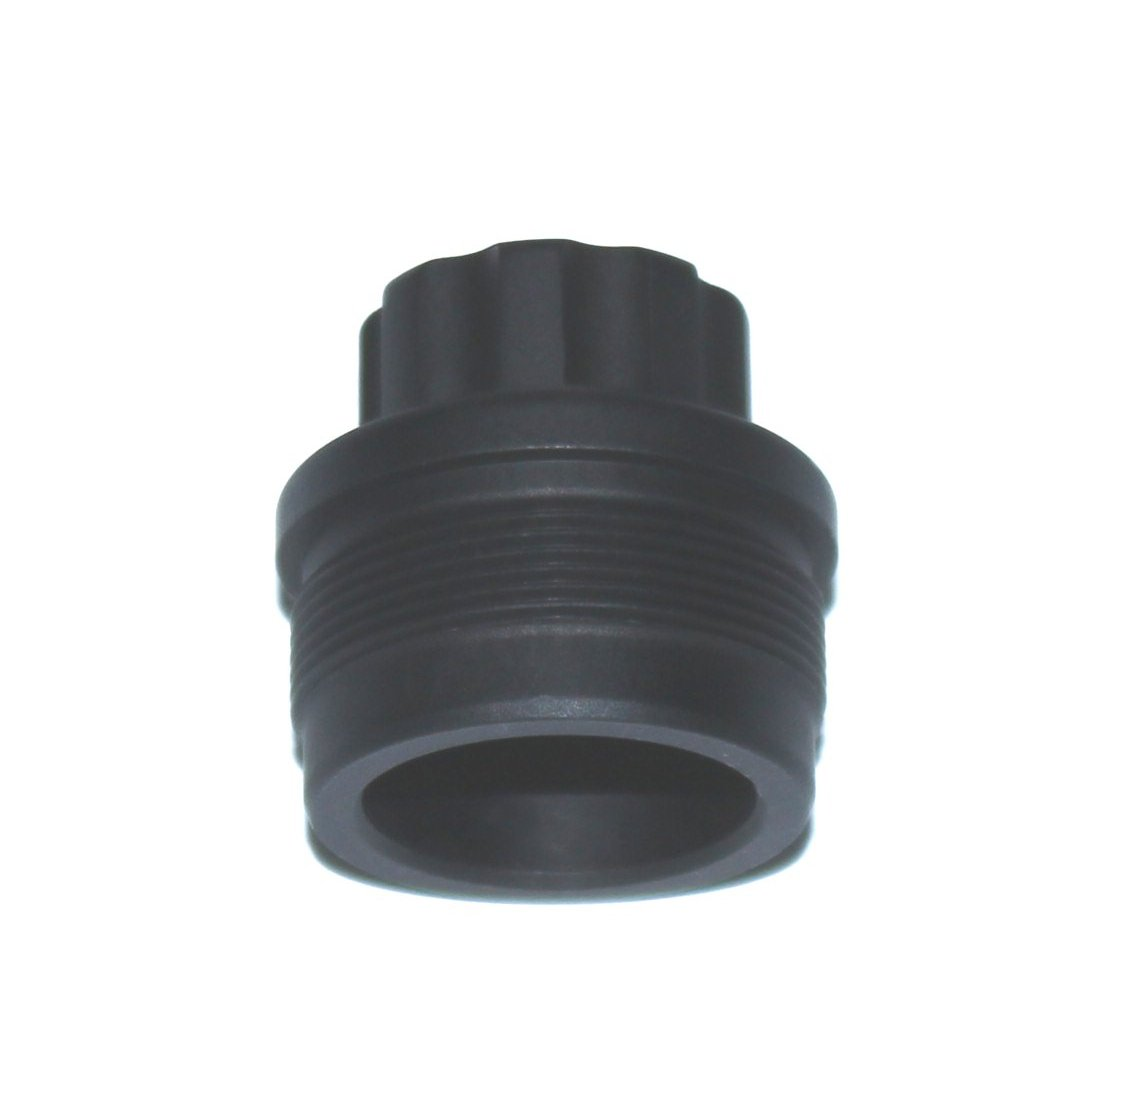 16mm x 1 Left Hand Fixed Barrel Adapter